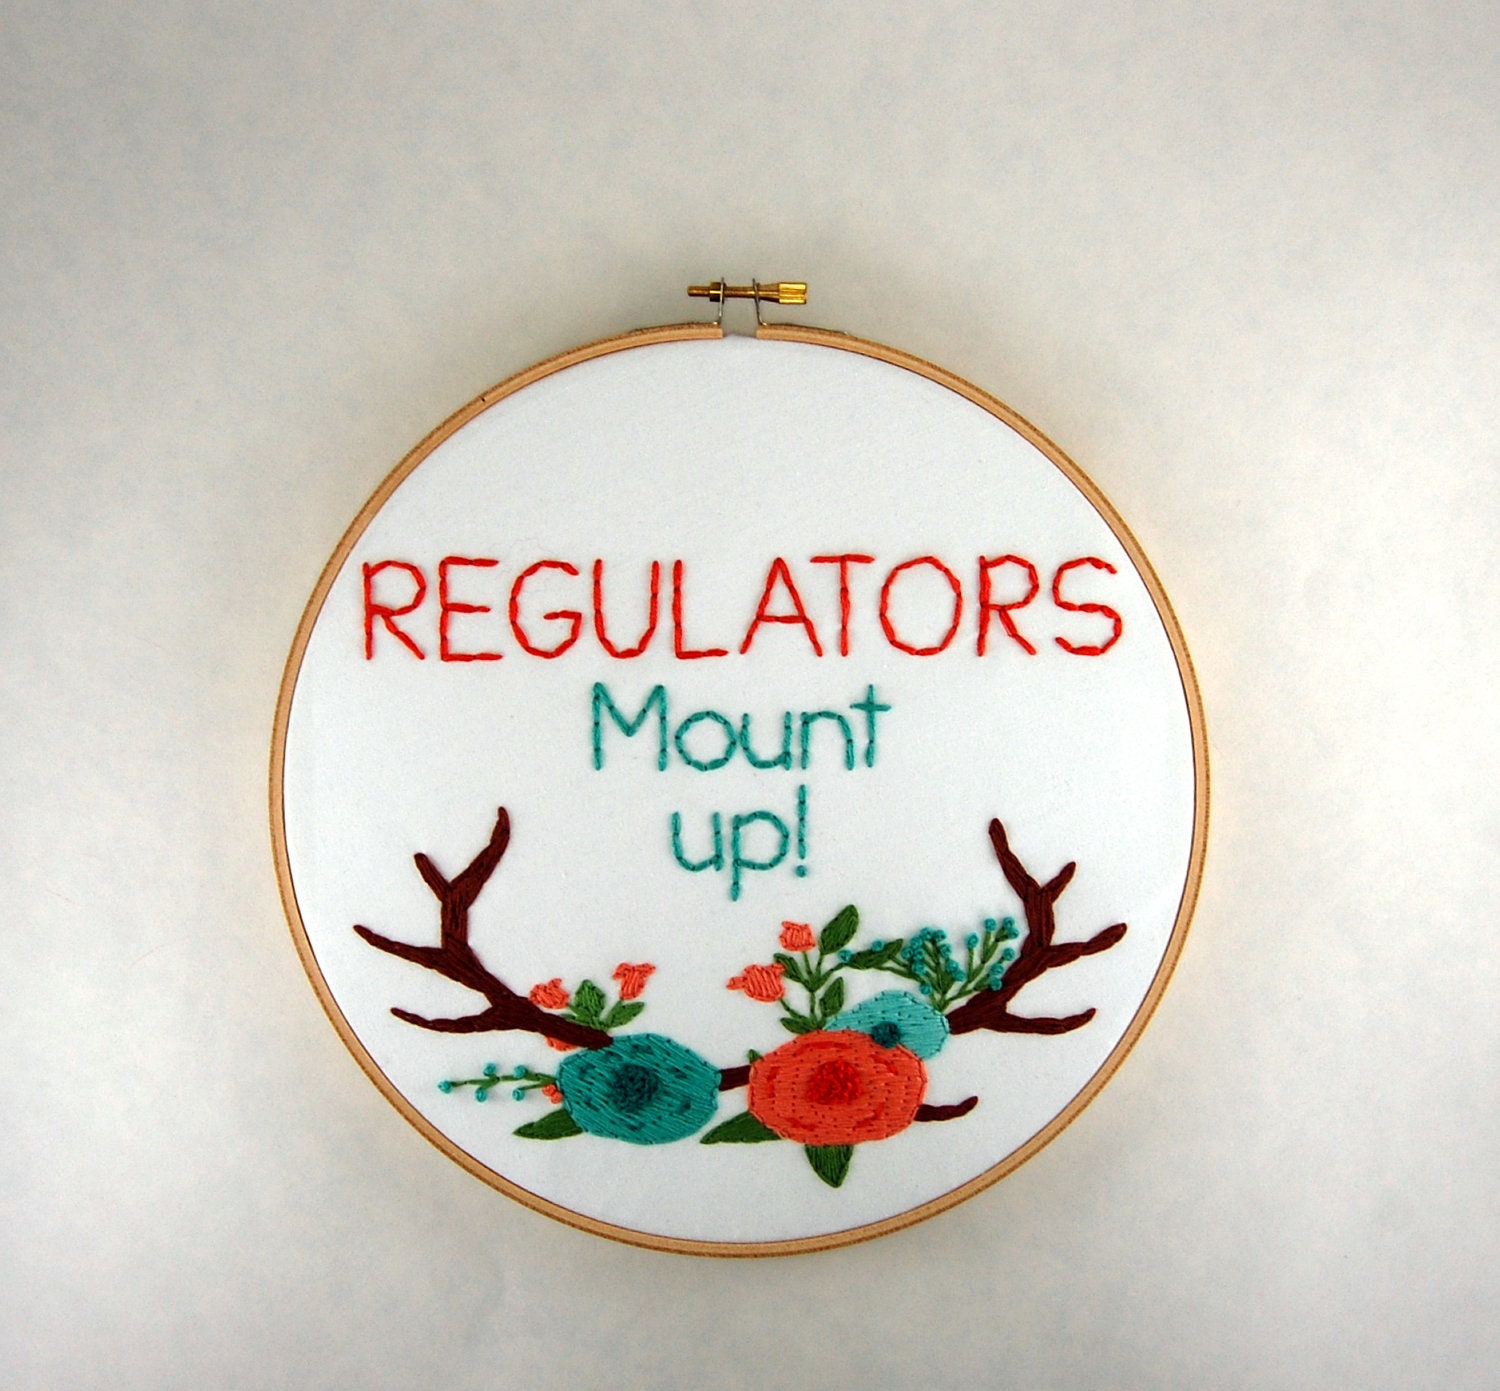 Regulators Mount Up Embroidered Hoop Art 9 inch Warren G